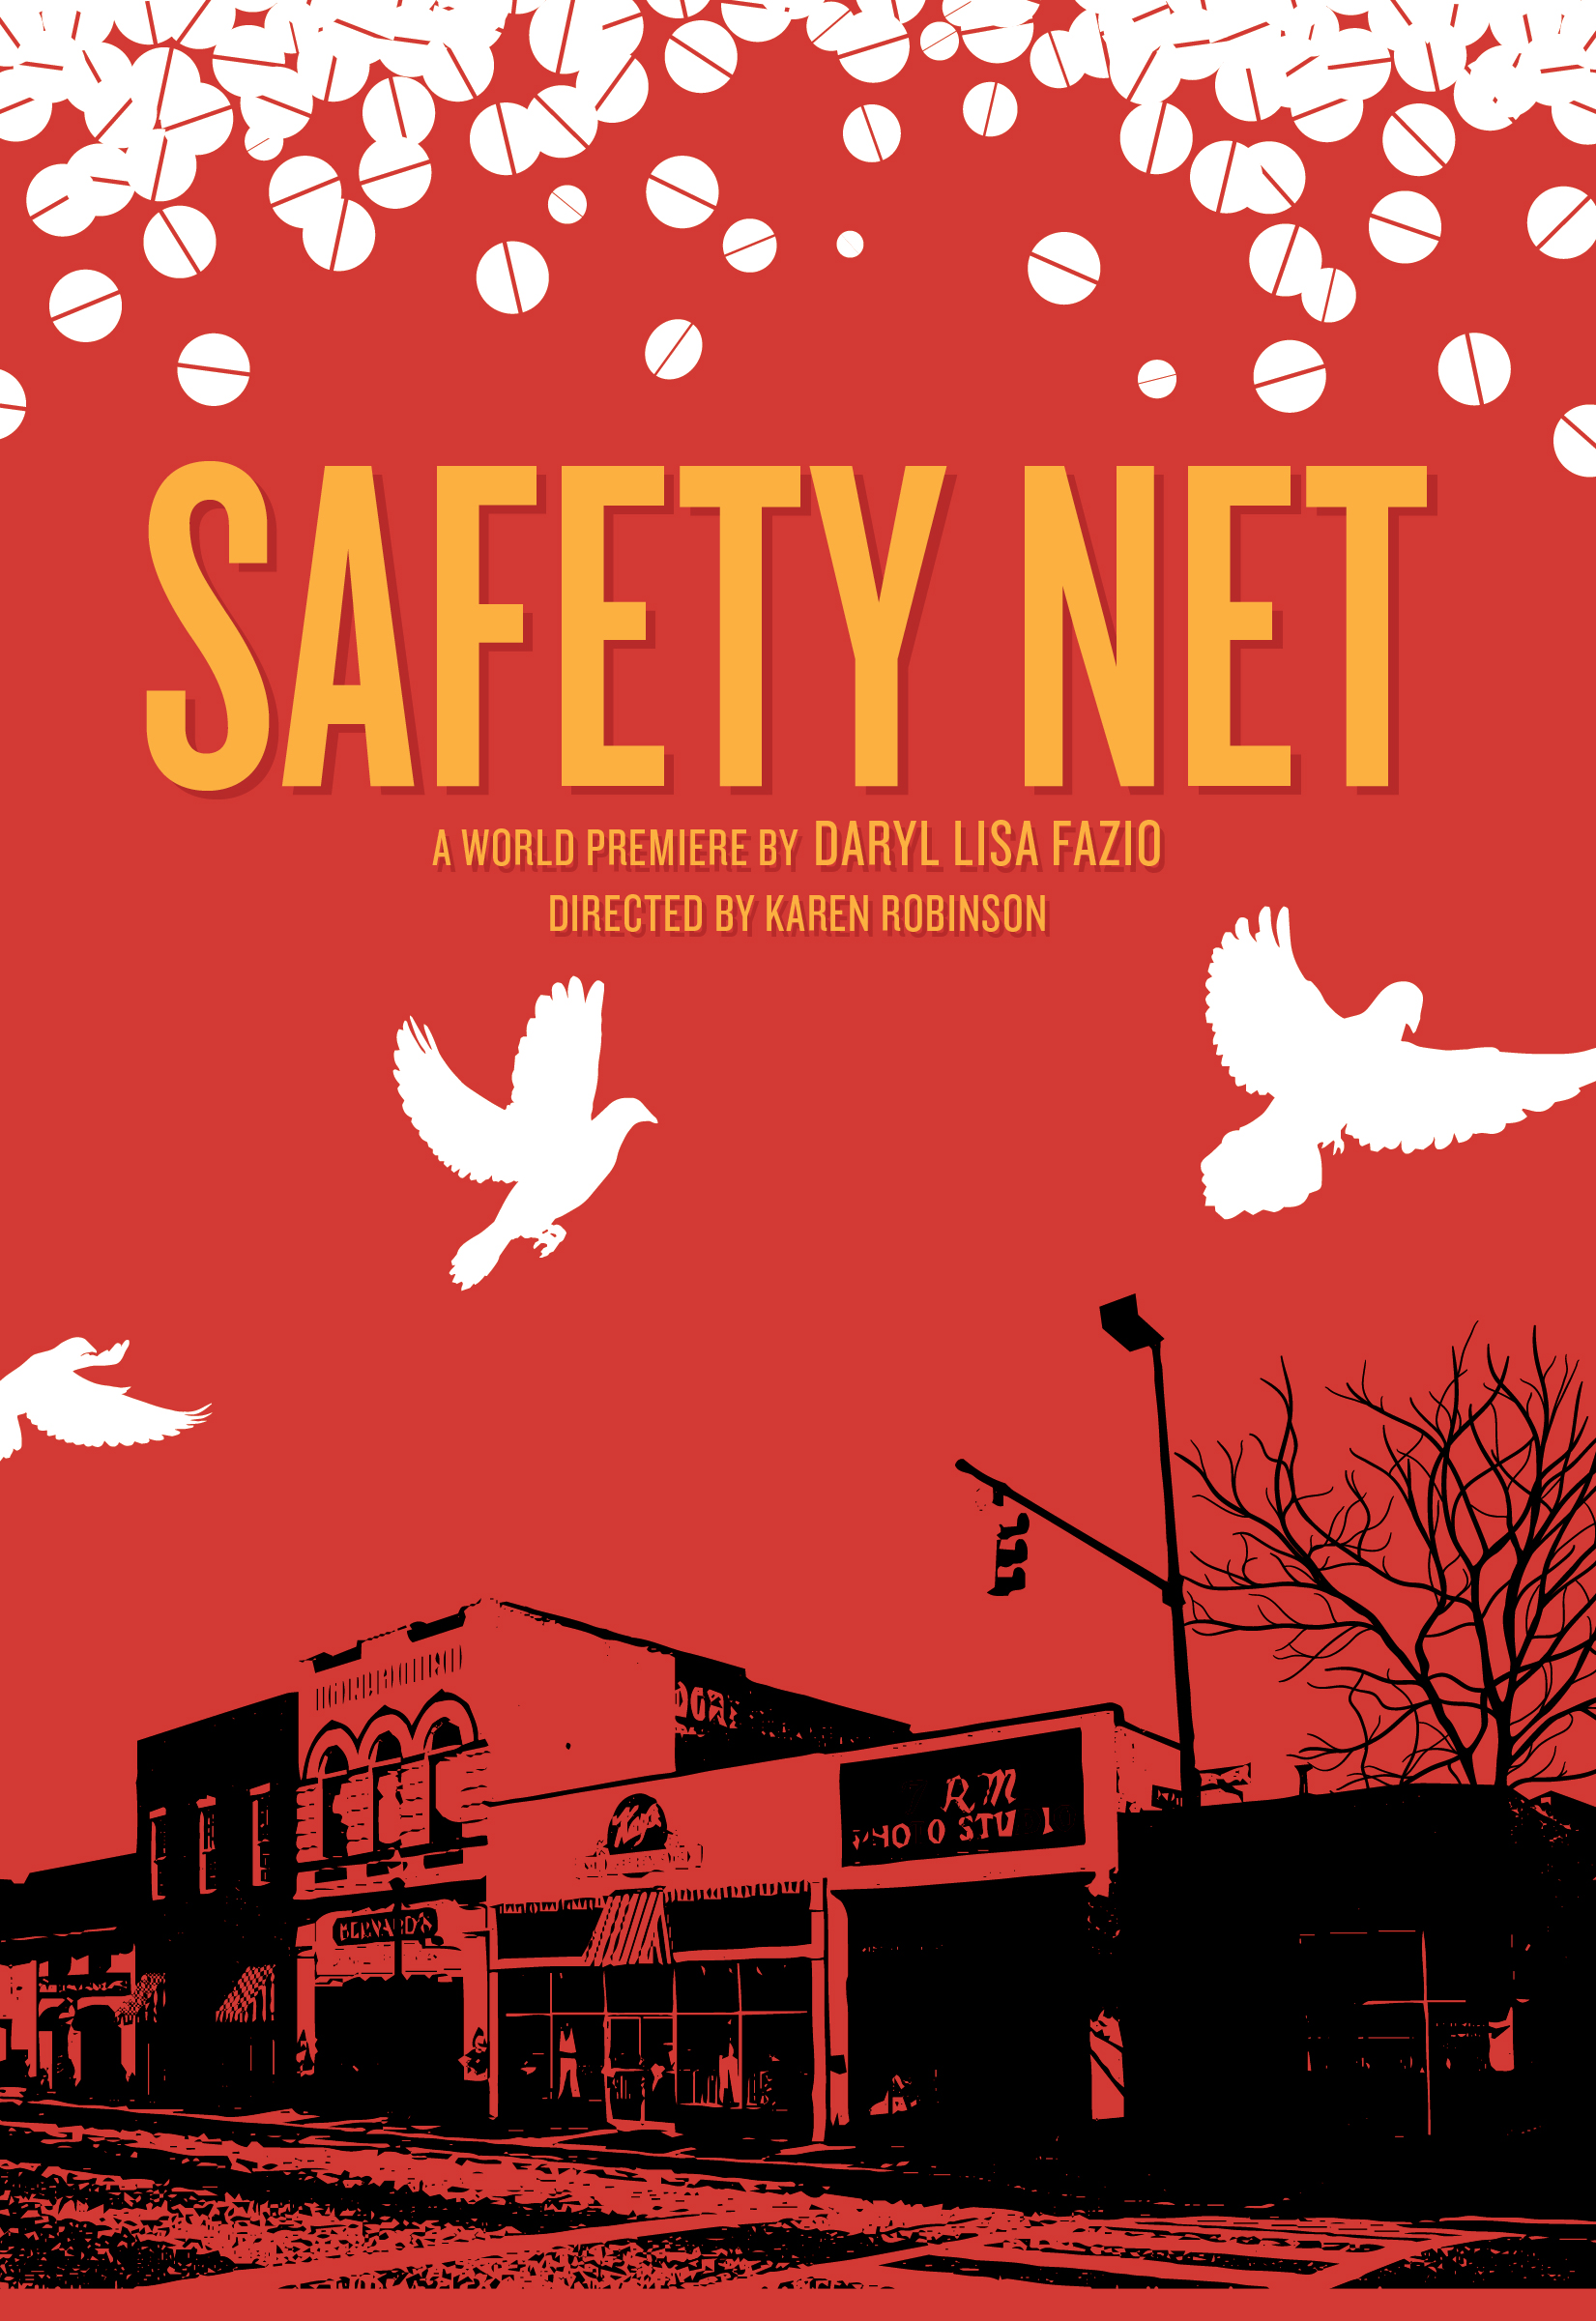 art-text_safetynet